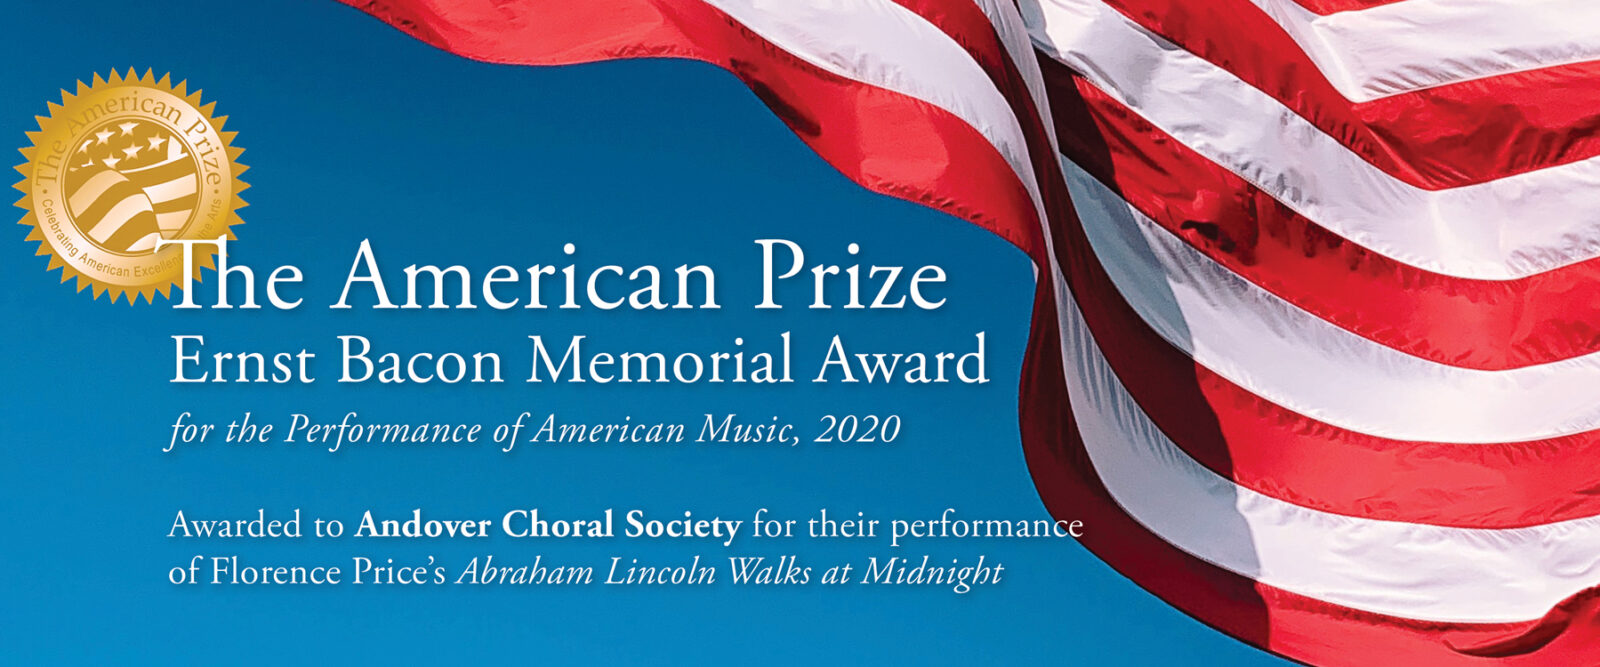 ACS awarded The American Prize